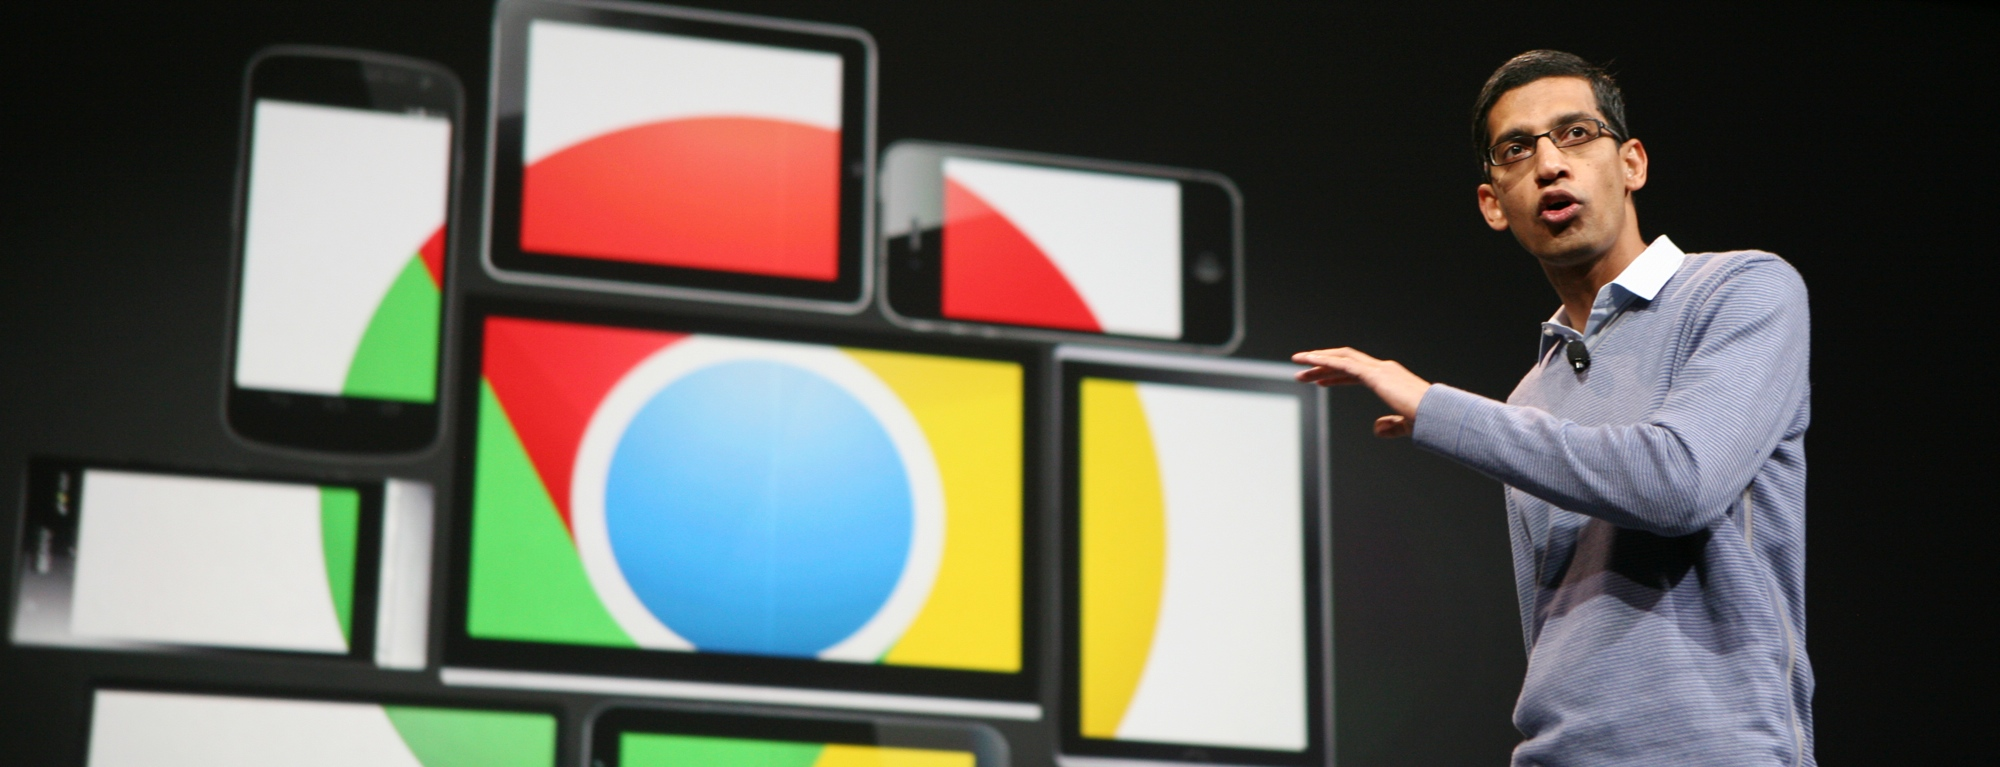 How Google Could Make Almost Everyone a Chrome OS User